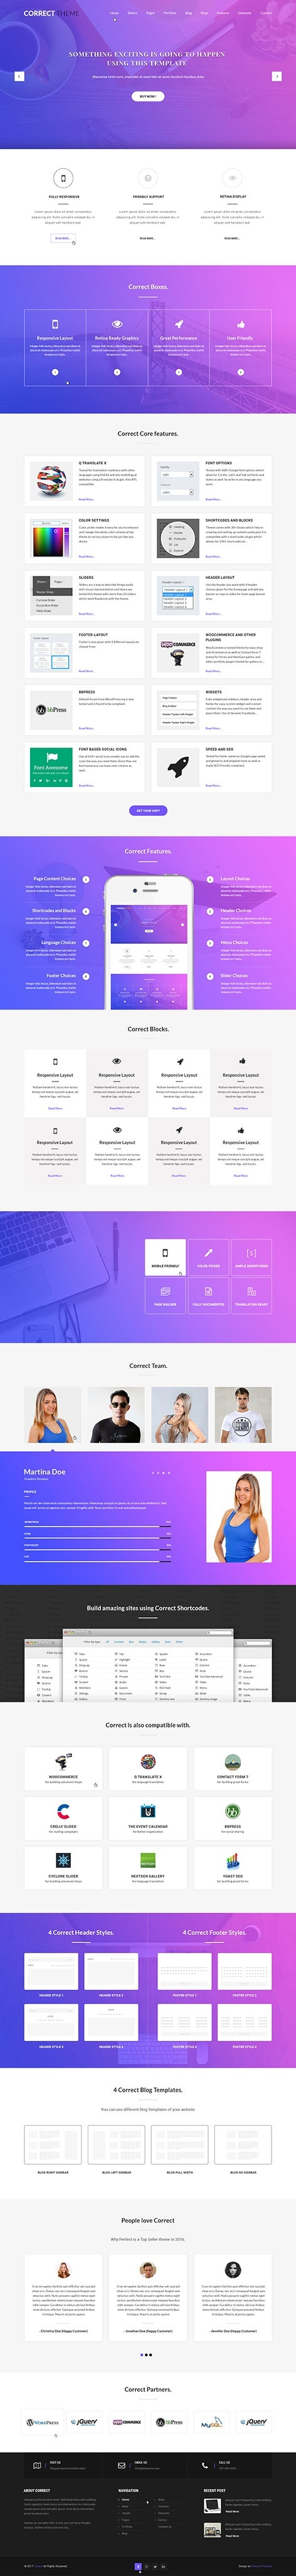 what are the best premium wordpress themes for web design company